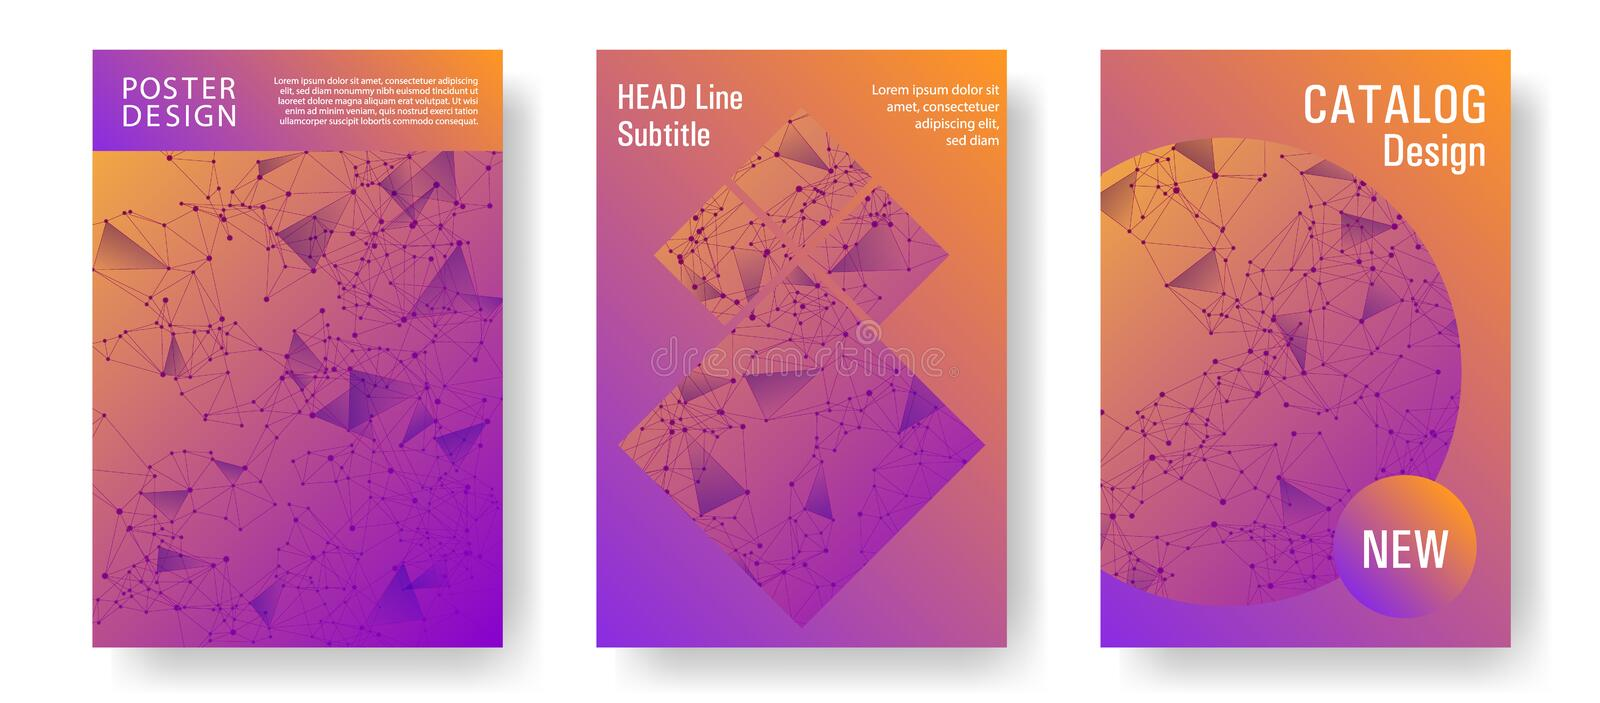 Network nodes information technology cover. Stylish cover layout design. Global network connection polygonal grid. Interlinked nodes, atom, web or big data vector illustration